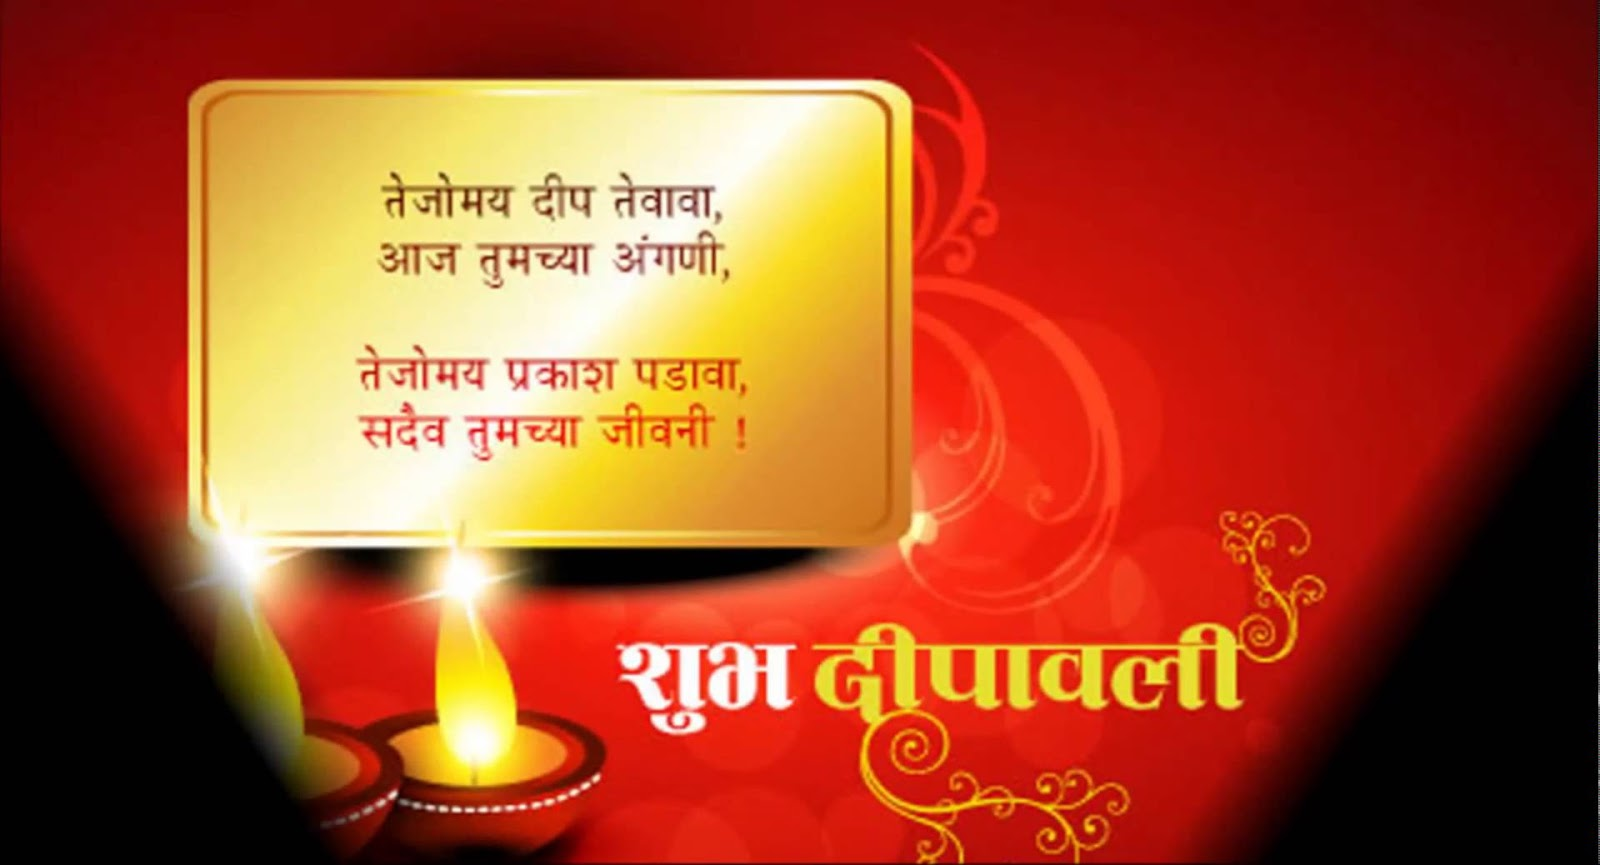 Diwali Greetings in Marathi